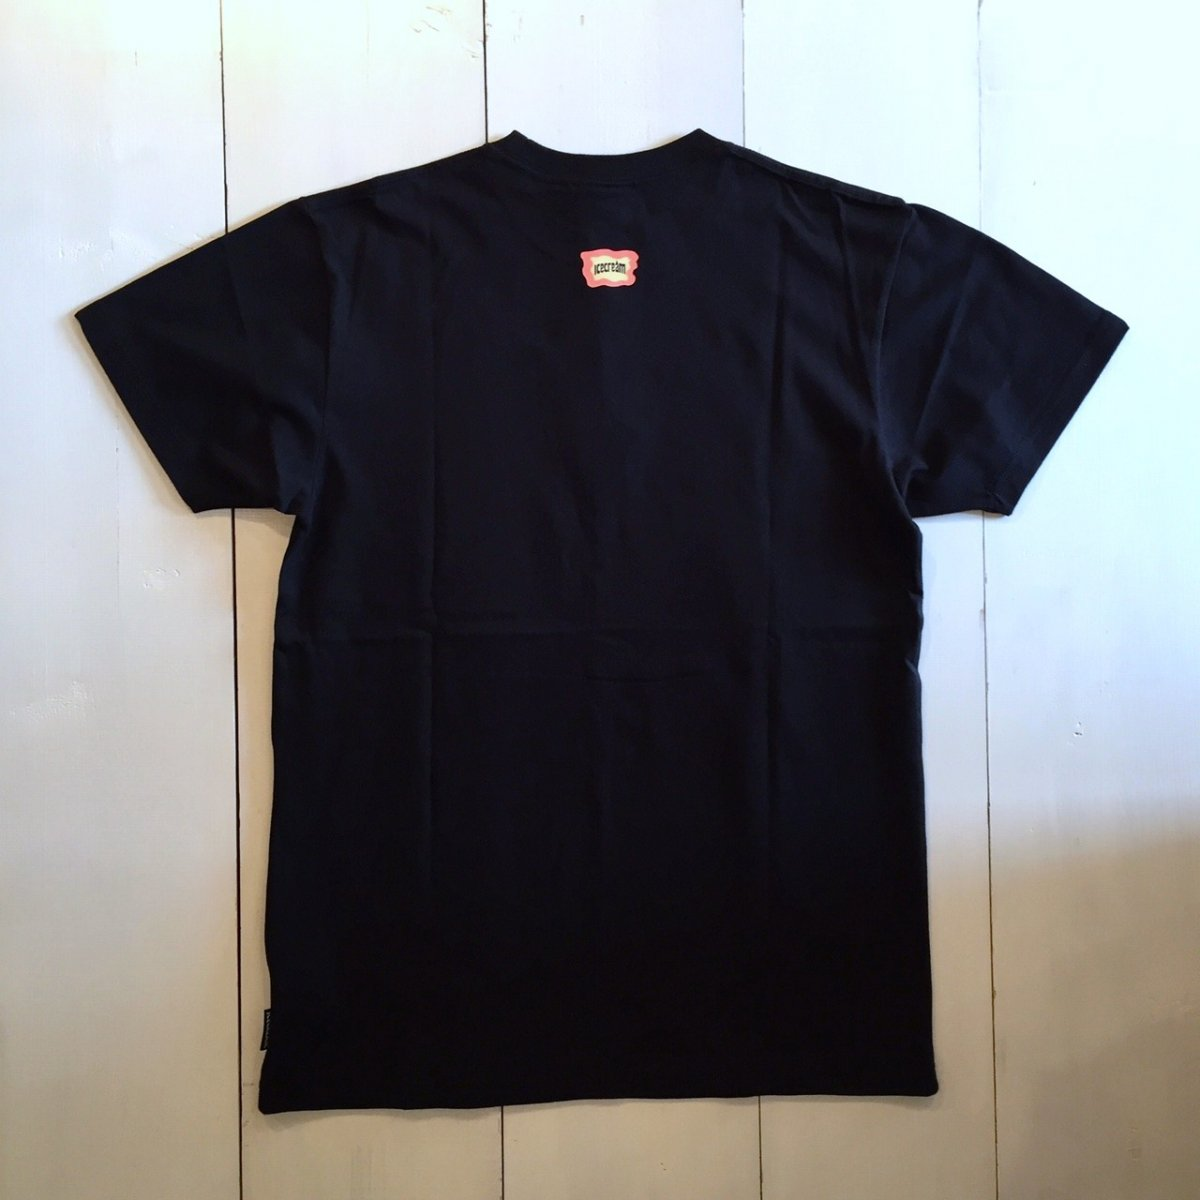 <img class='new_mark_img1' src='//img.shop-pro.jp/img/new/icons3.gif' style='border:none;display:inline;margin:0px;padding:0px;width:auto;' />ICE CREAM アイスクリーム / Tシャツ RIPPER T-SHIRTS 【BLACK】